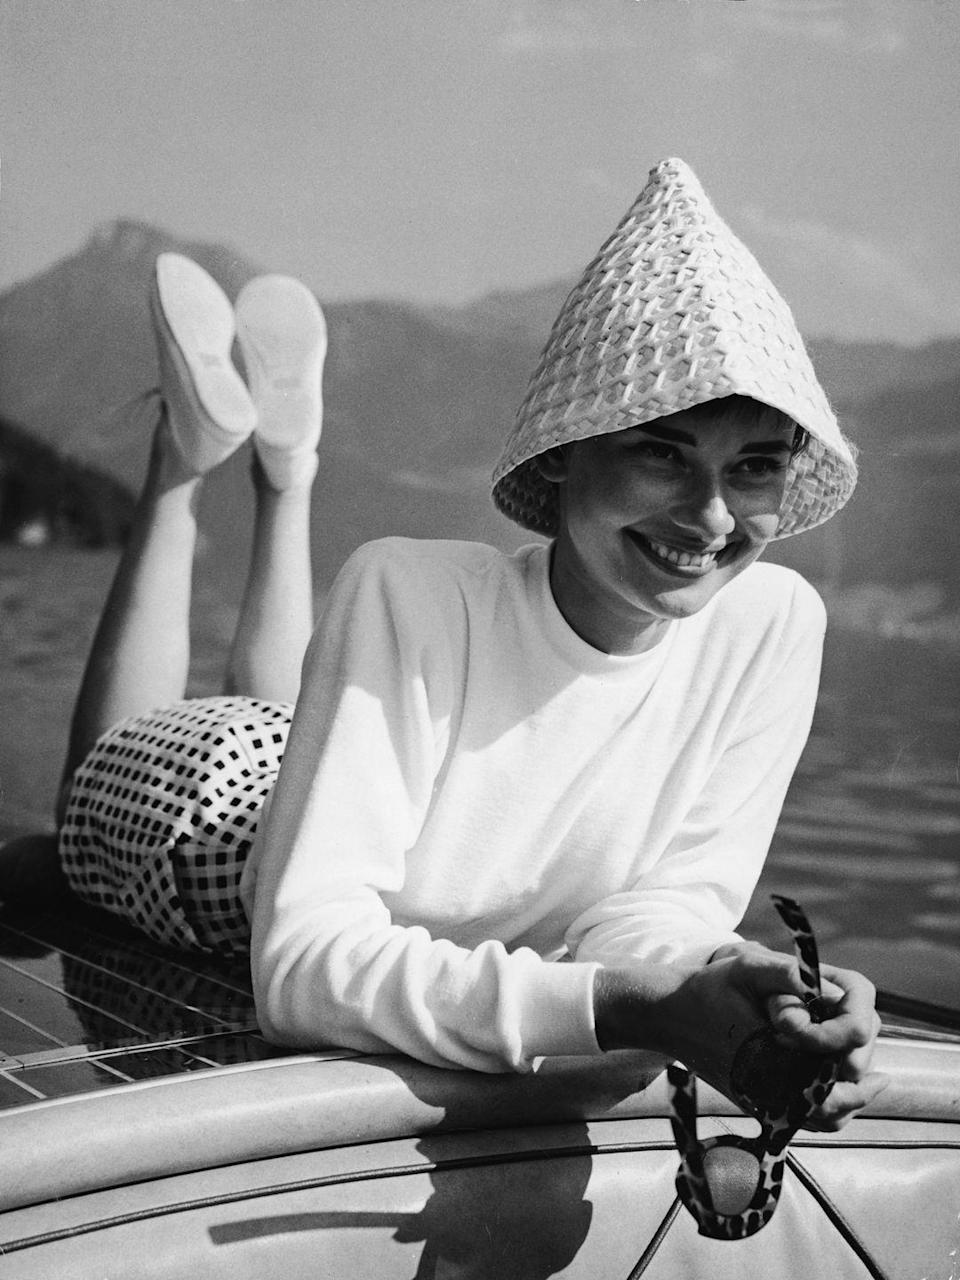 <p>Audrey Hepburn lays across the bow of a motorboat during a day on the water. The stylish actress wears a gingham print skirt, white mock turtleneck, and woven sun hat. </p>